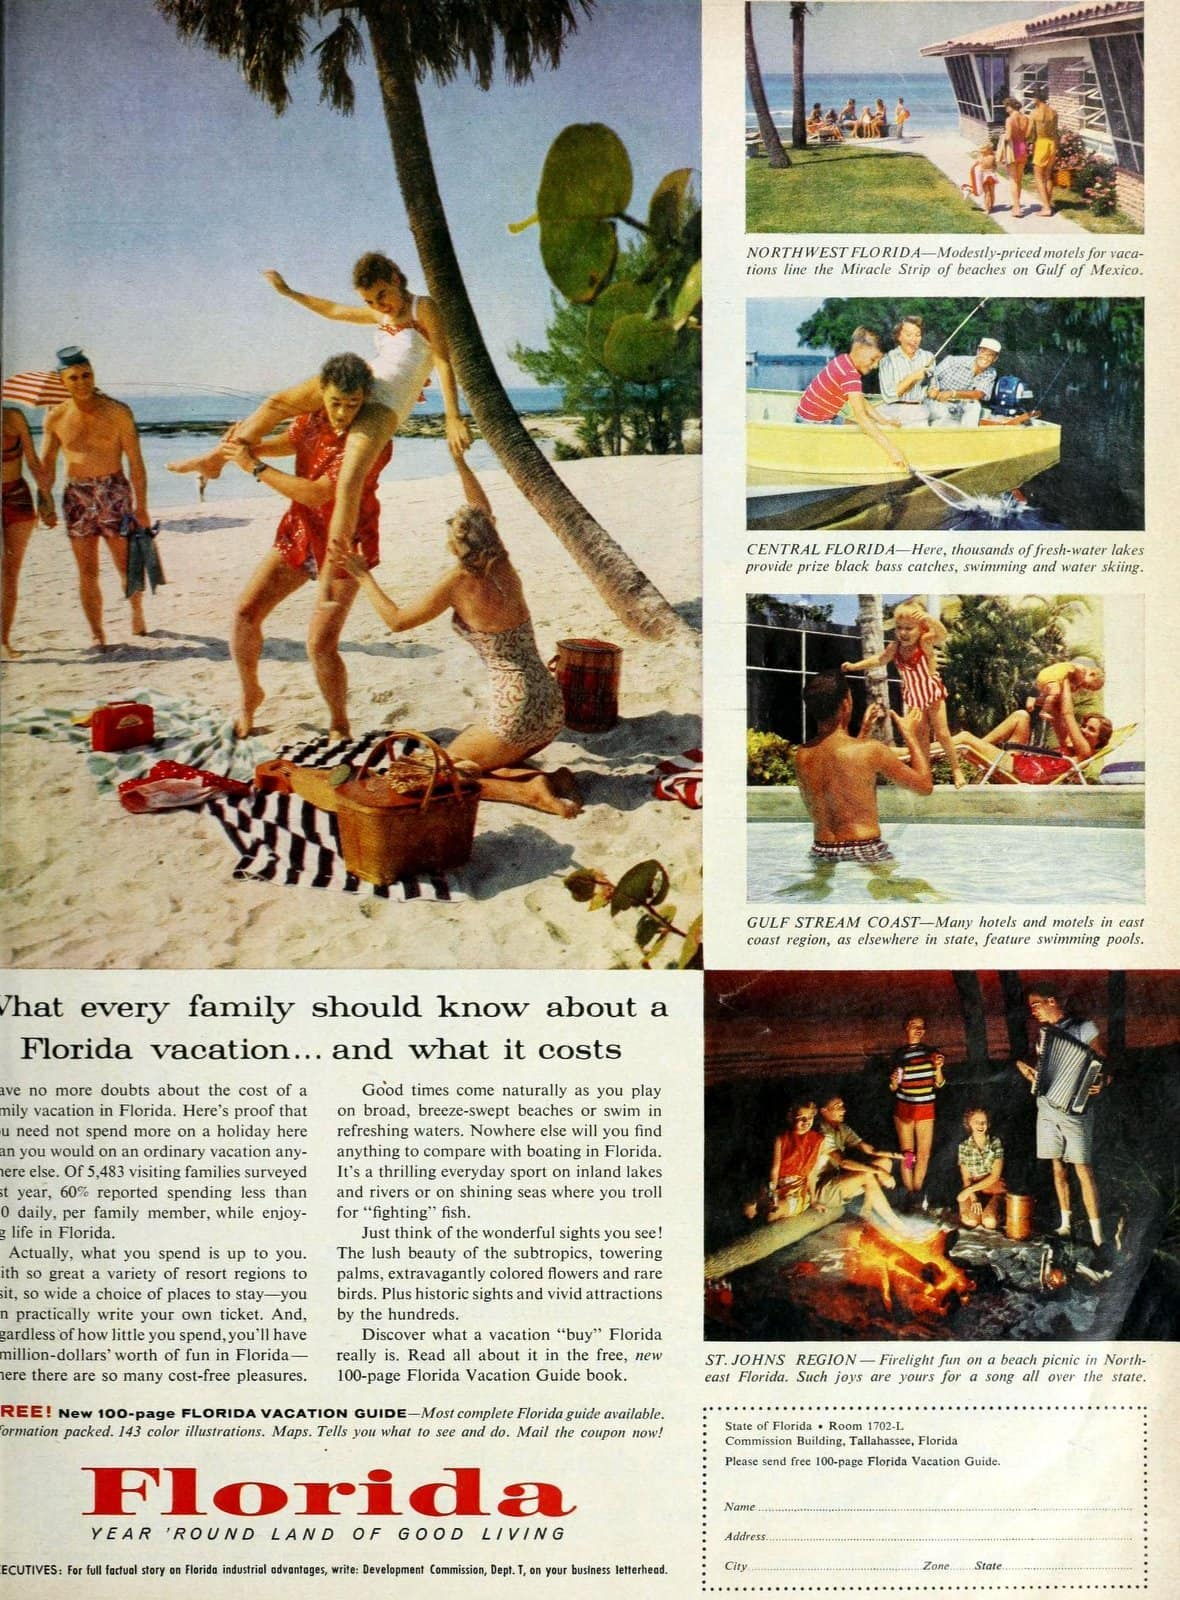 About family vacations in vintage Florida of the fifties (1958)